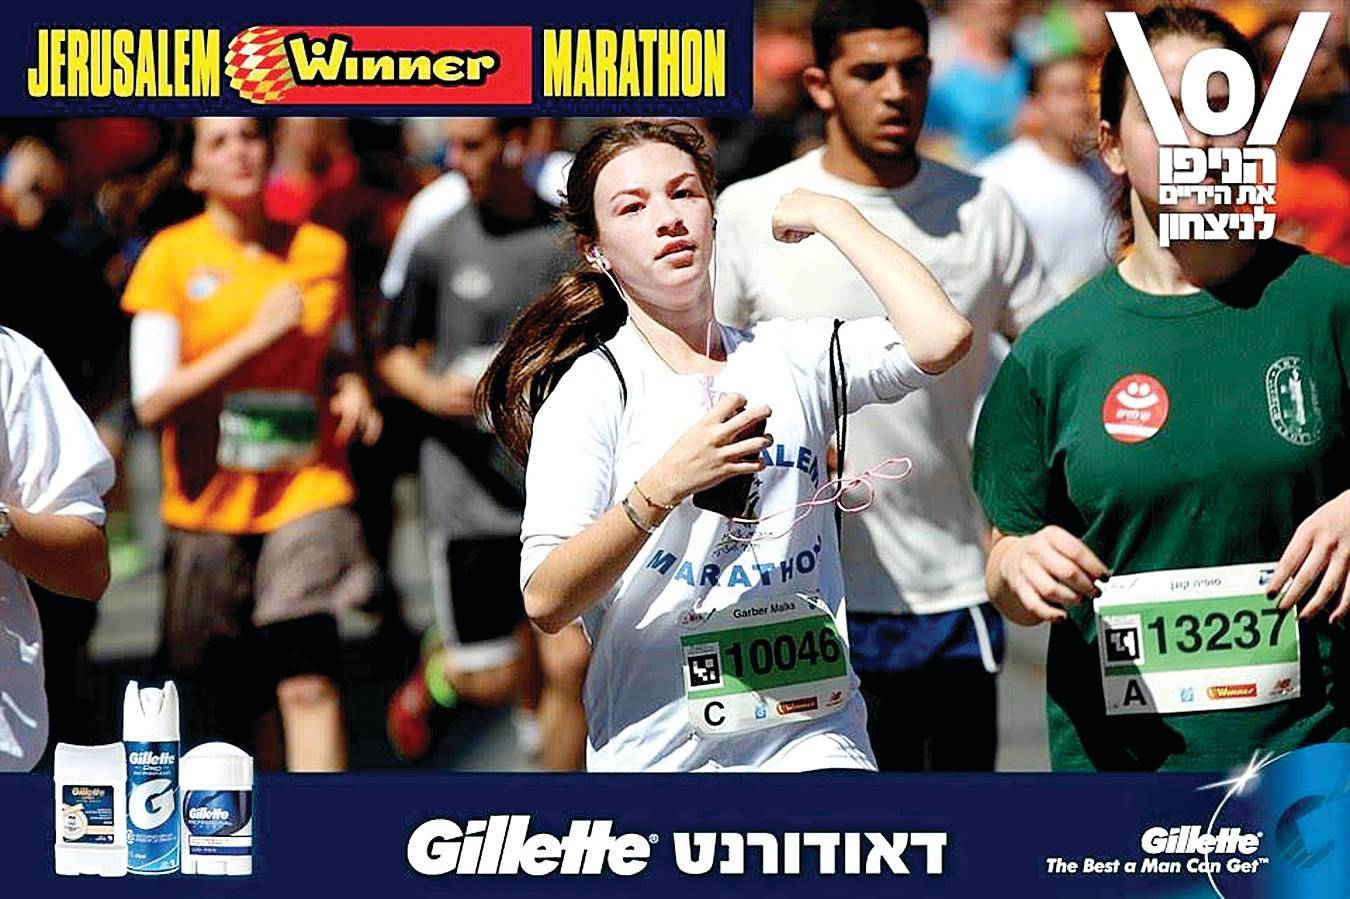 Malka Garber, center, in a screen shot from Israeli television when she participated in a 10 kilometer run for charity in Jerusalem.